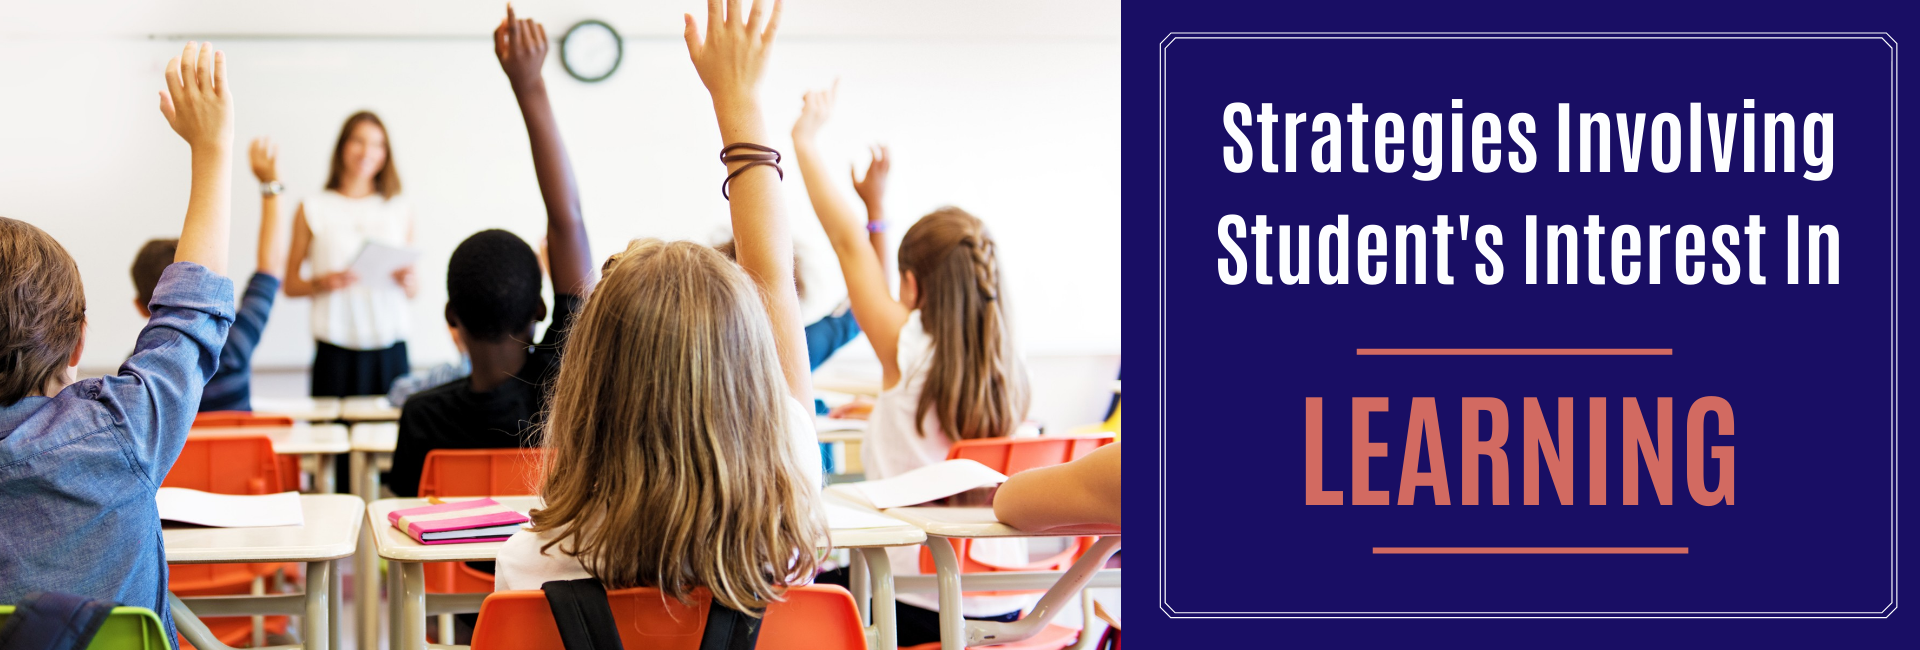 Strategies Involving Student's Interest In Learning